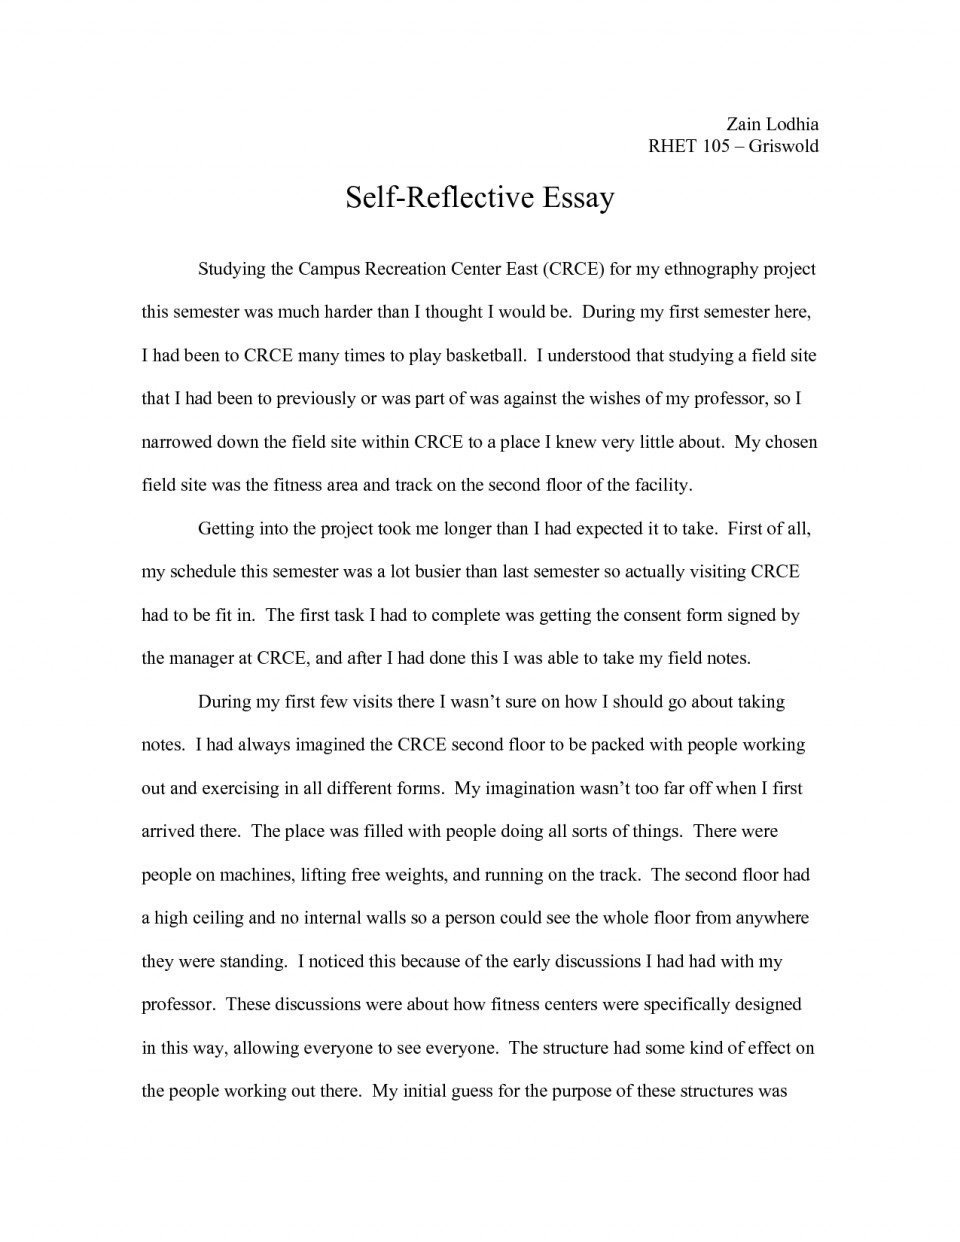 003 Qal0pwnf46 Reflective Essays Beautiful Essay Examples Advanced Higher English Writing Example Pdf About Life 960